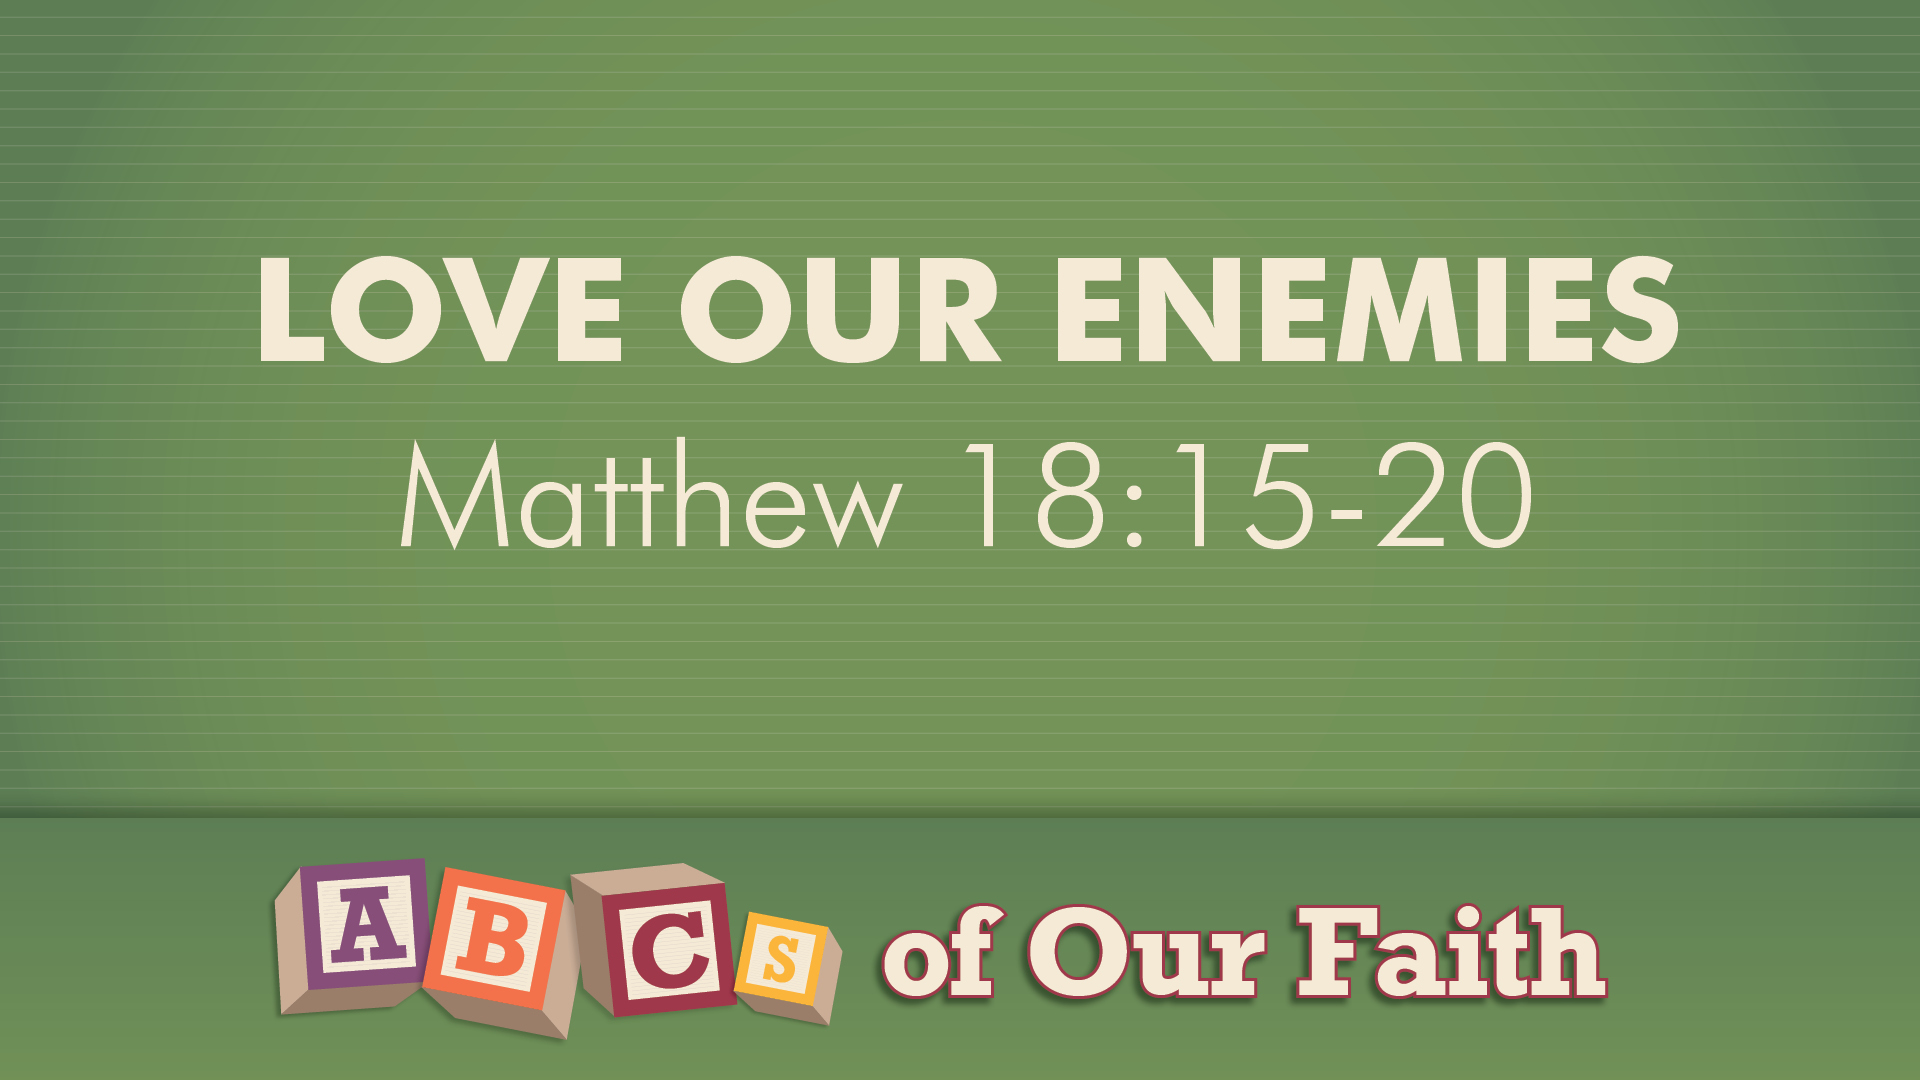 ABCs of our faith master graphic OCT11 (1)